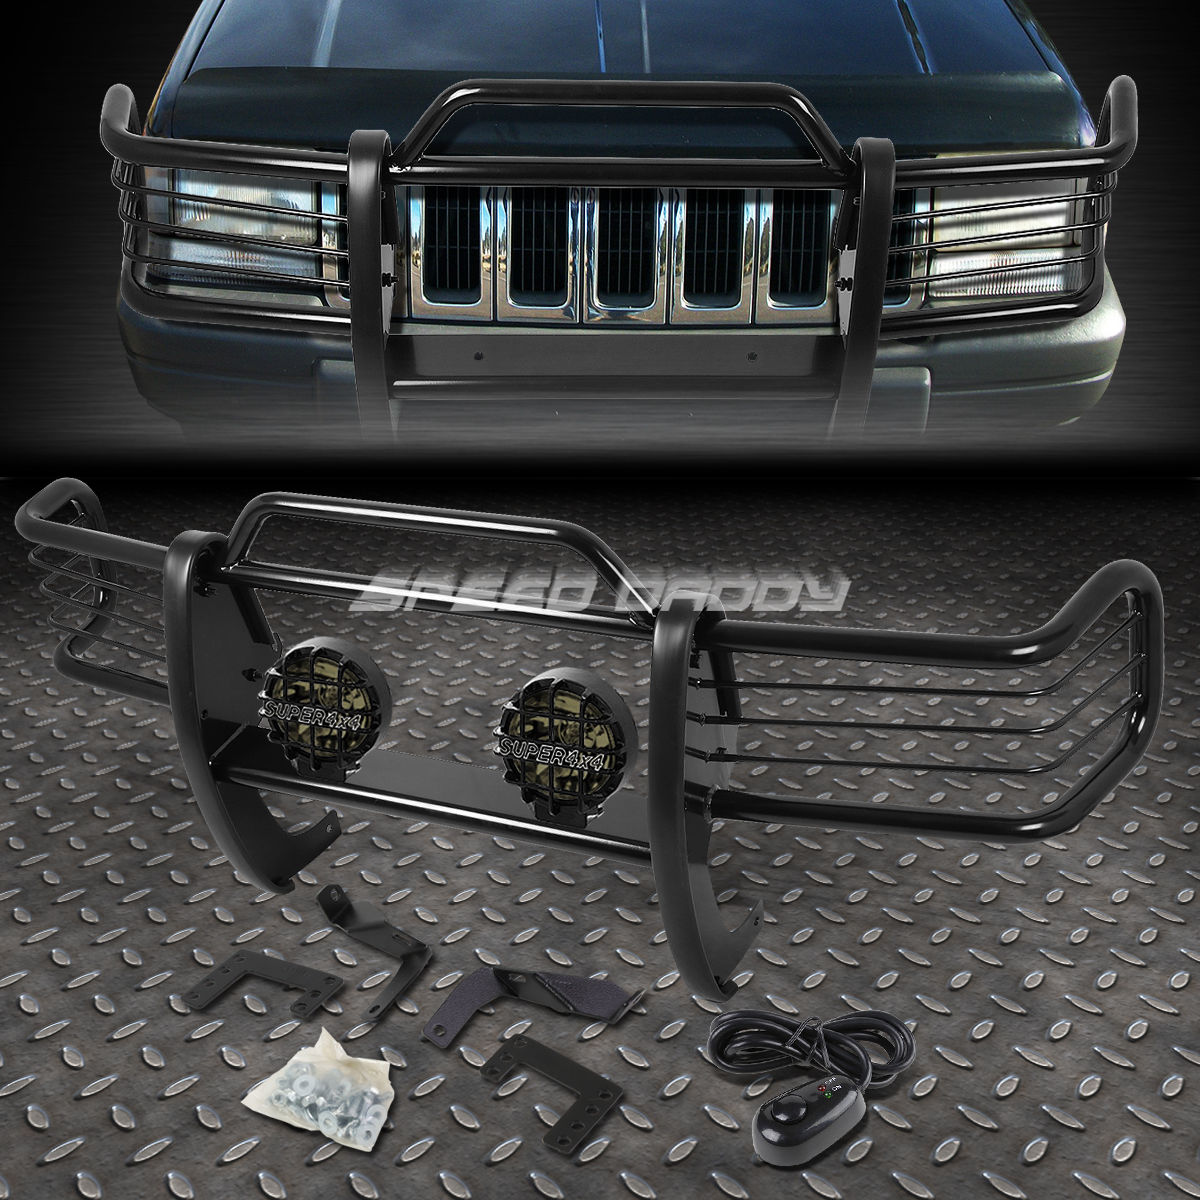 グリル ブラックブラッシュグリルガード+ラウンドソーキーフォグライトfor 933-98 JEEP GRAND CHEROKEE ZJ BLACK BRUSH GRILLE GUARD+ROUND SMOKE FOG LIGHT FOR 93-98 JEEP GRAND CHEROKEE ZJ